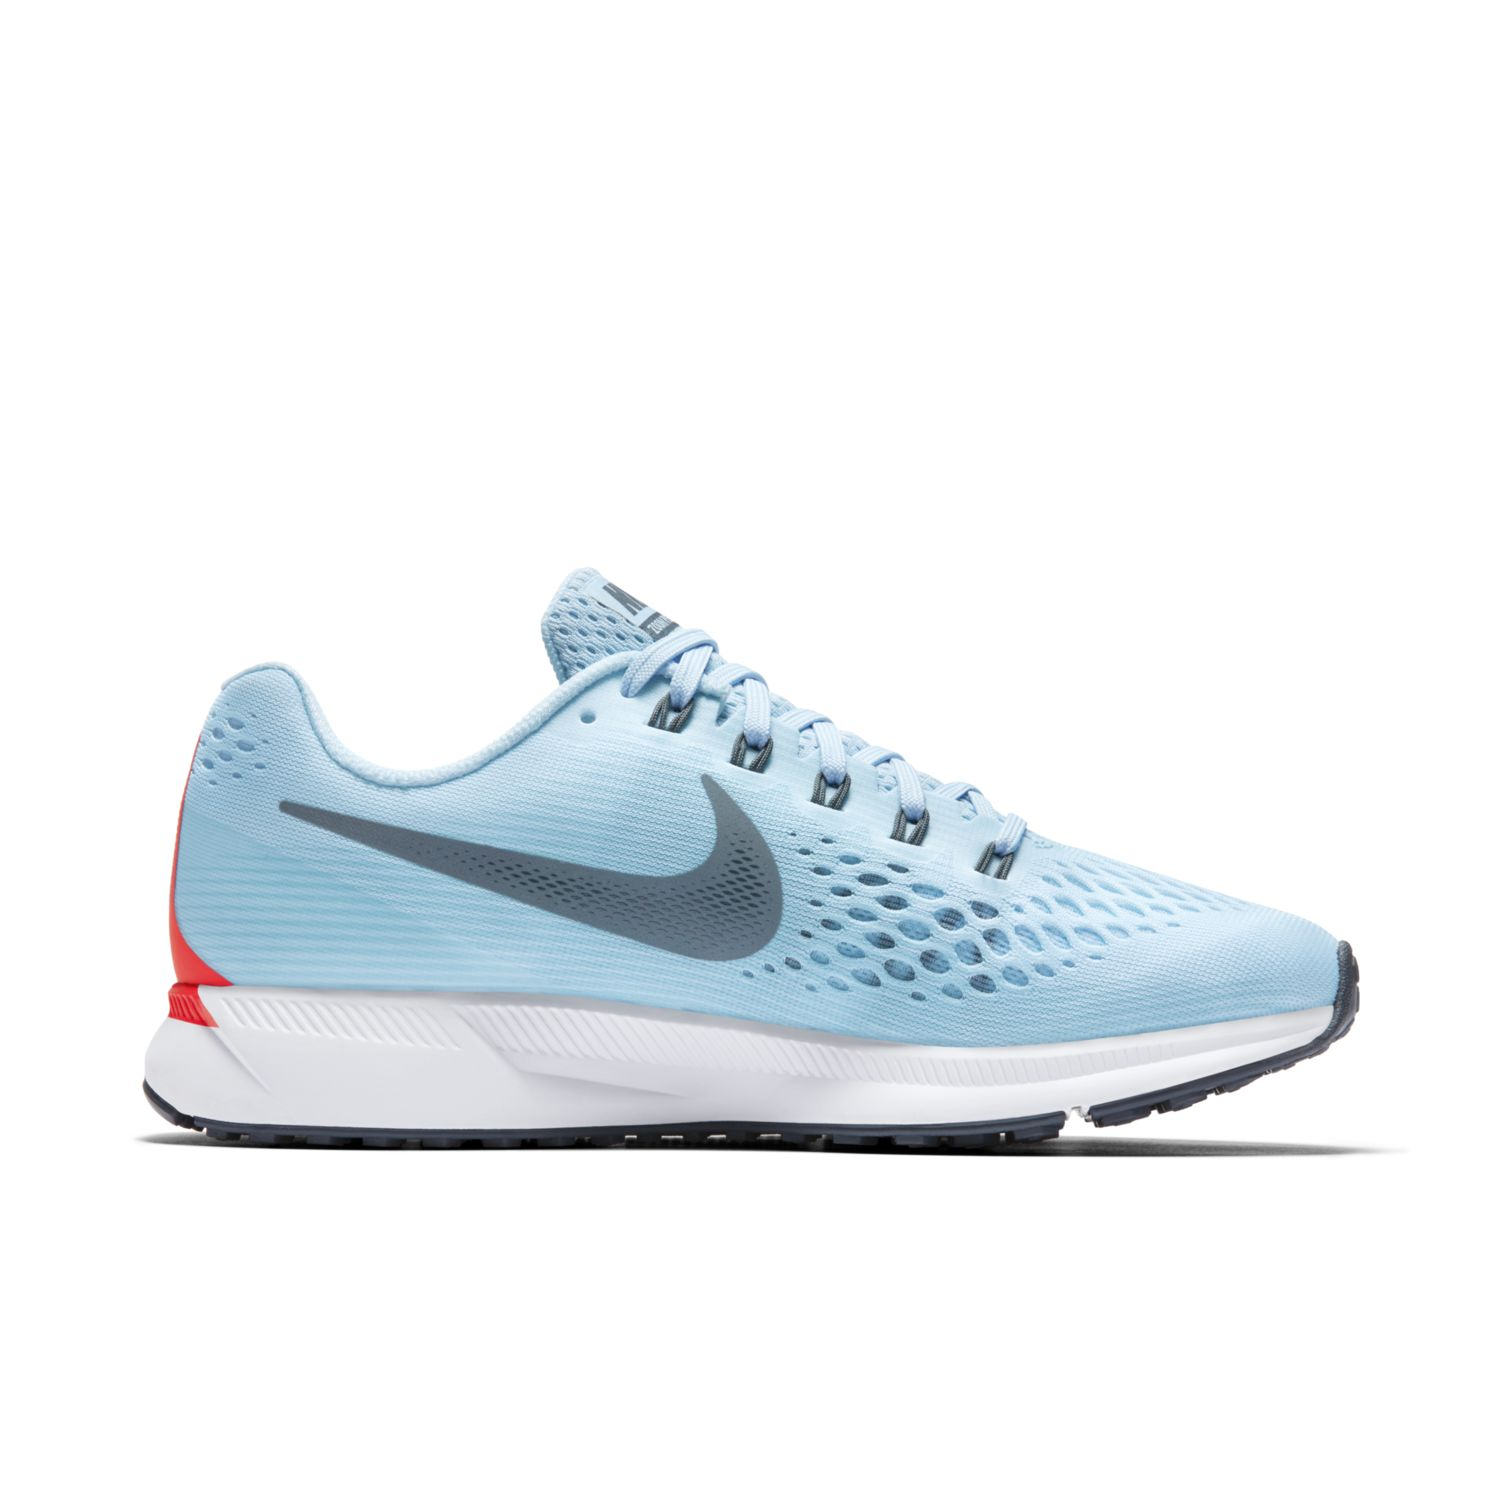 Nike Air Zoom Pegasus 34 in Grau Blau